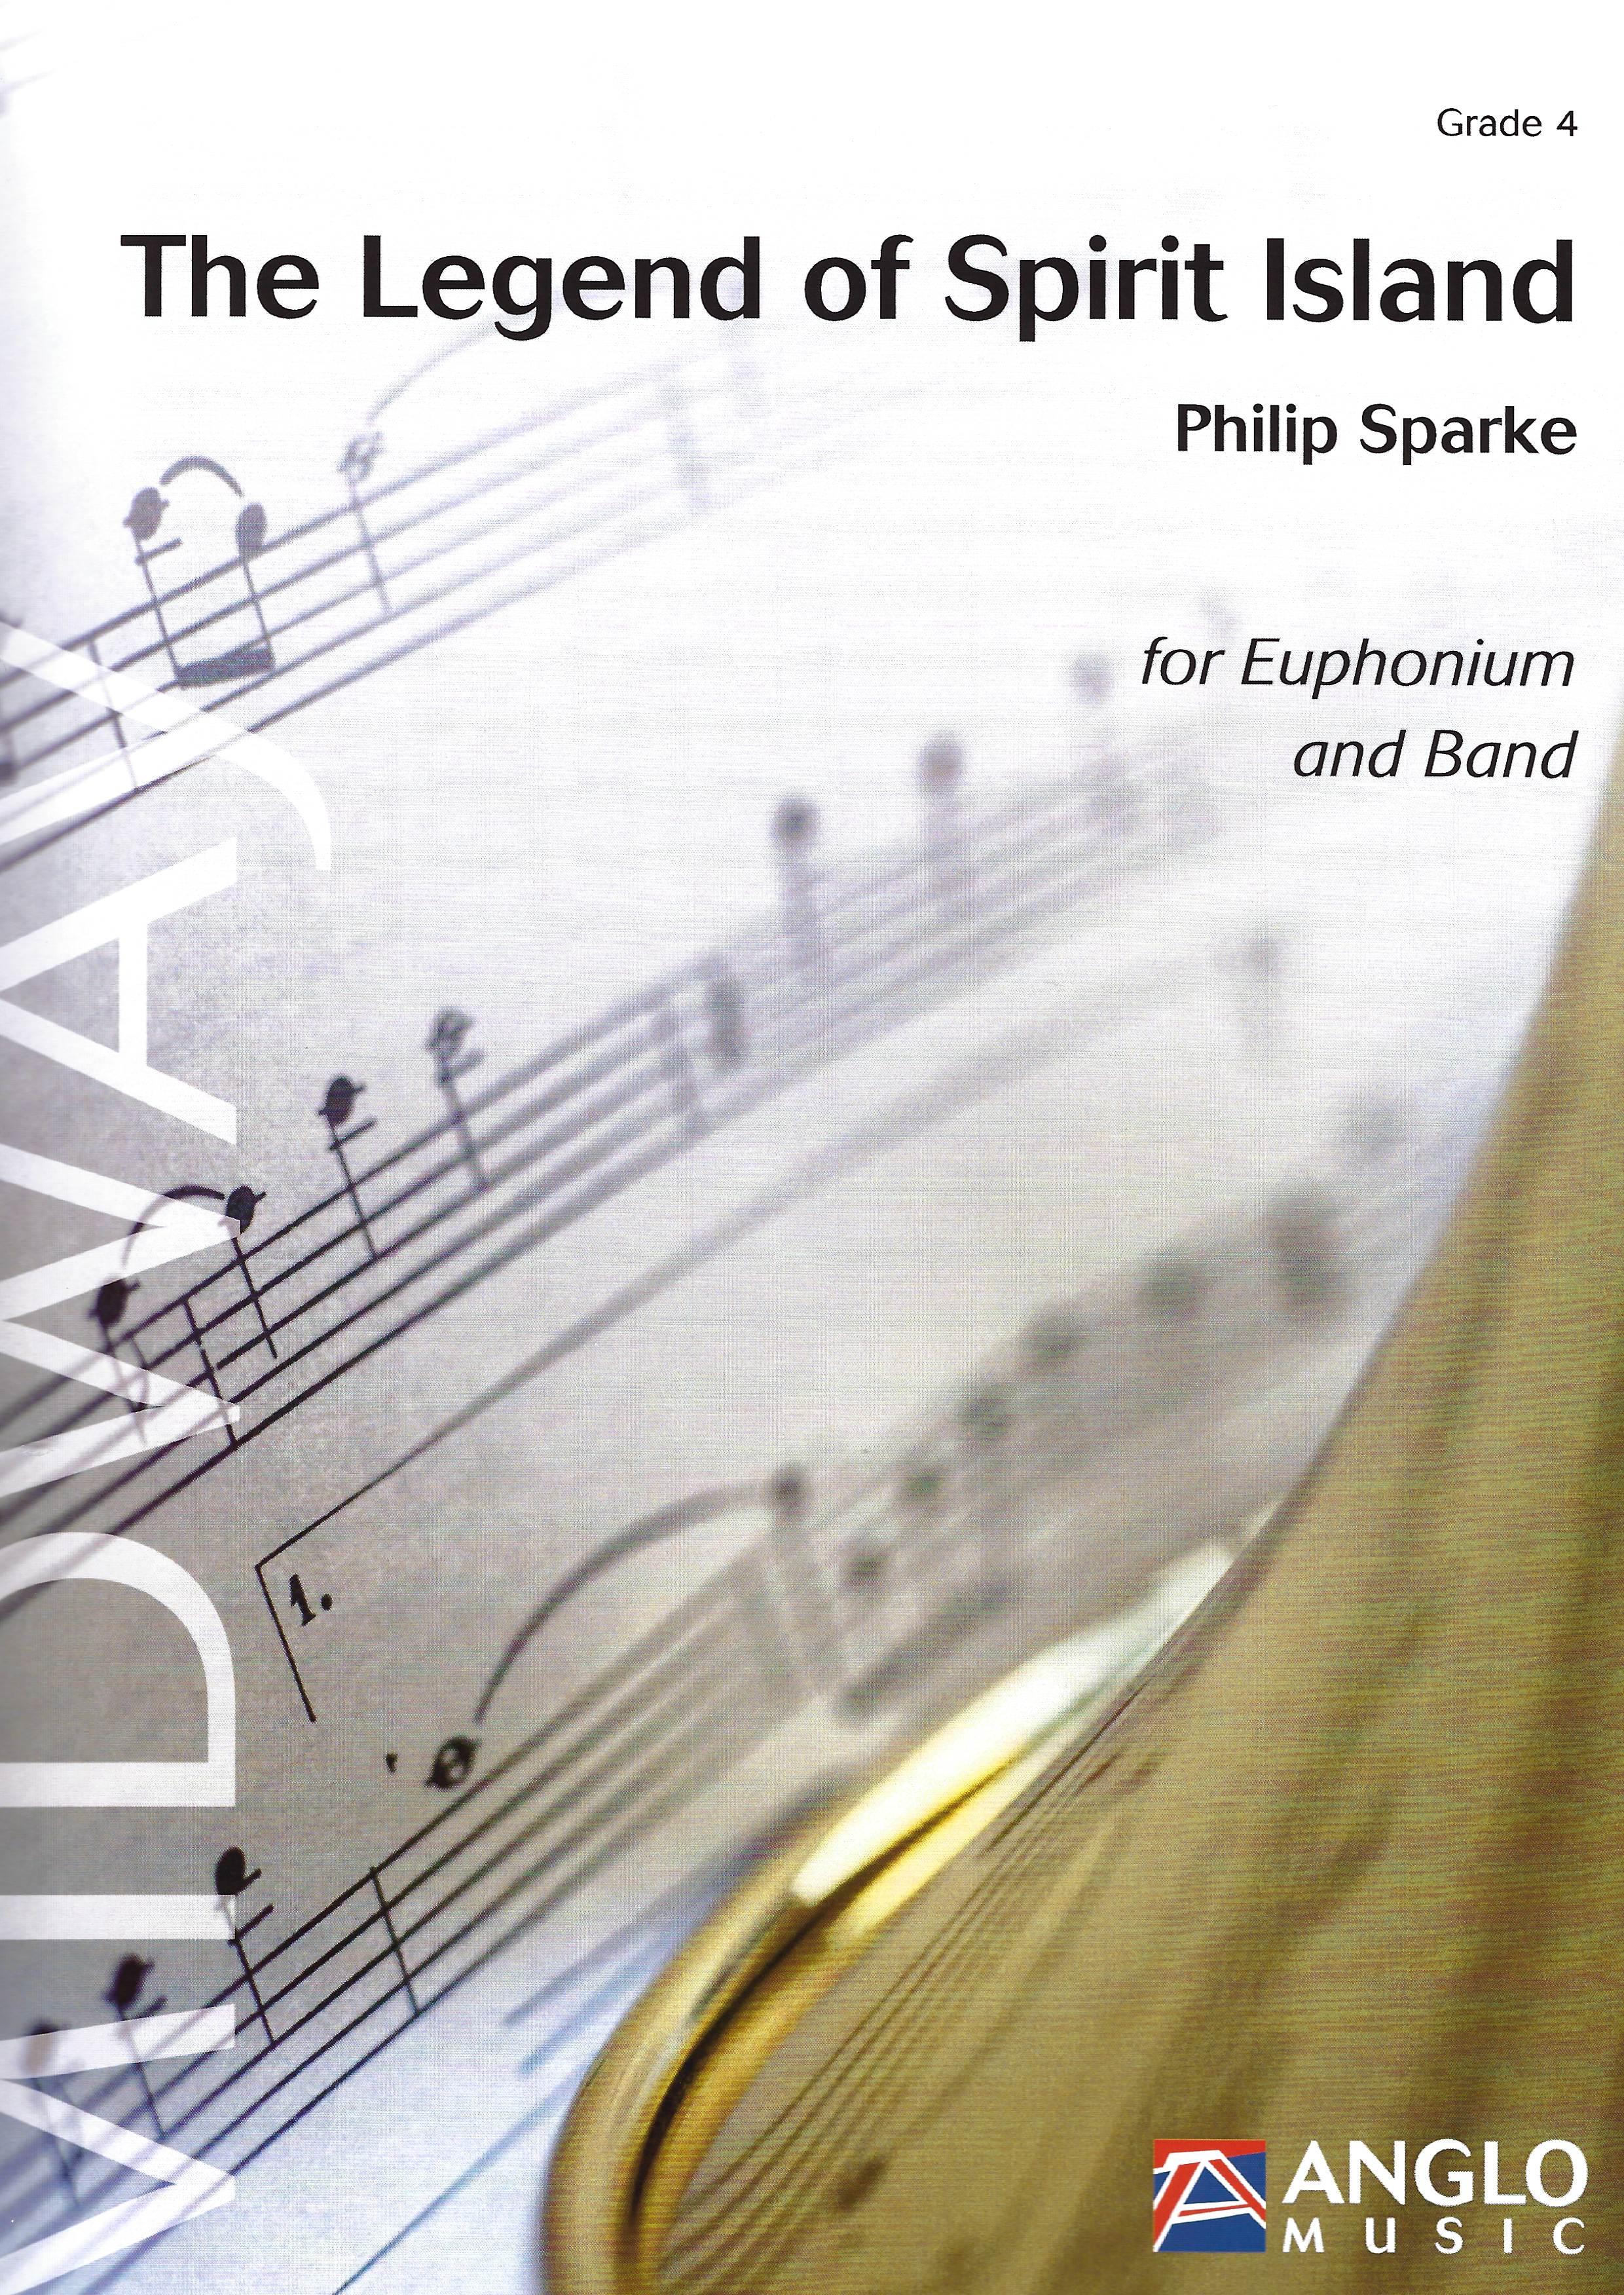 The Legend of Sprit Island - Philip Sparke - Euphonium and Concert Band, Wind Band, Harmonie